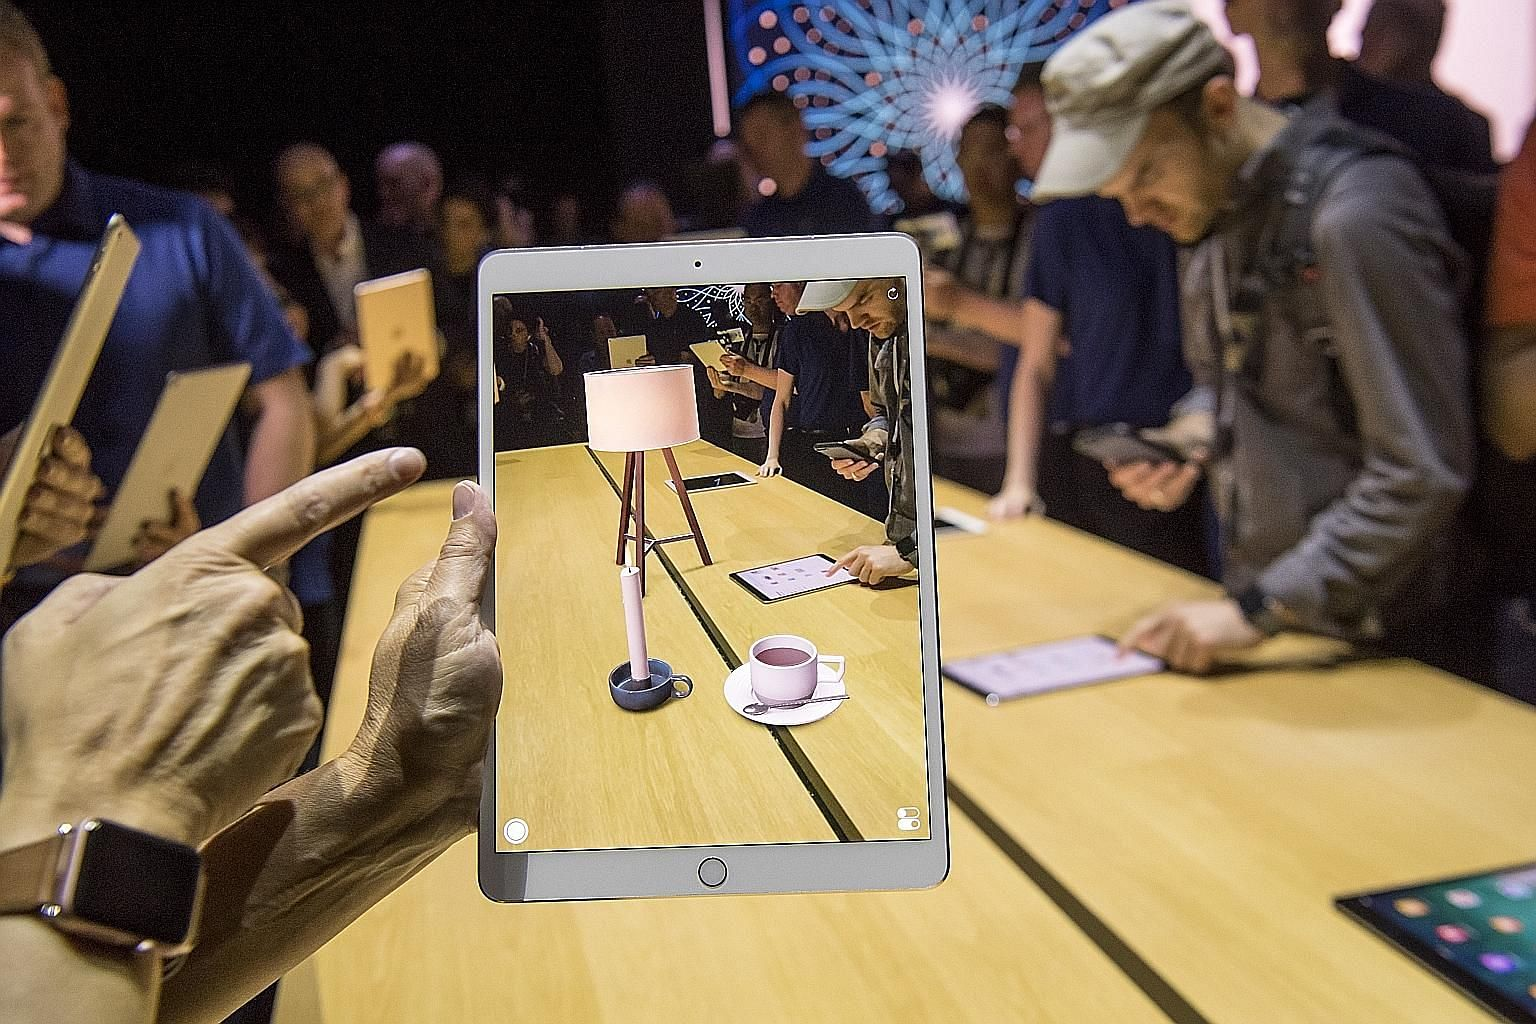 A participant checking out the ARKit augmented reality tool on a new iPad Pro at the Apple Worldwide Developers Conference in San Jose, California, last week. The 10.5-inch iPad Pro is powered by the new Apple A10X Fusion chip, which Apple claims is